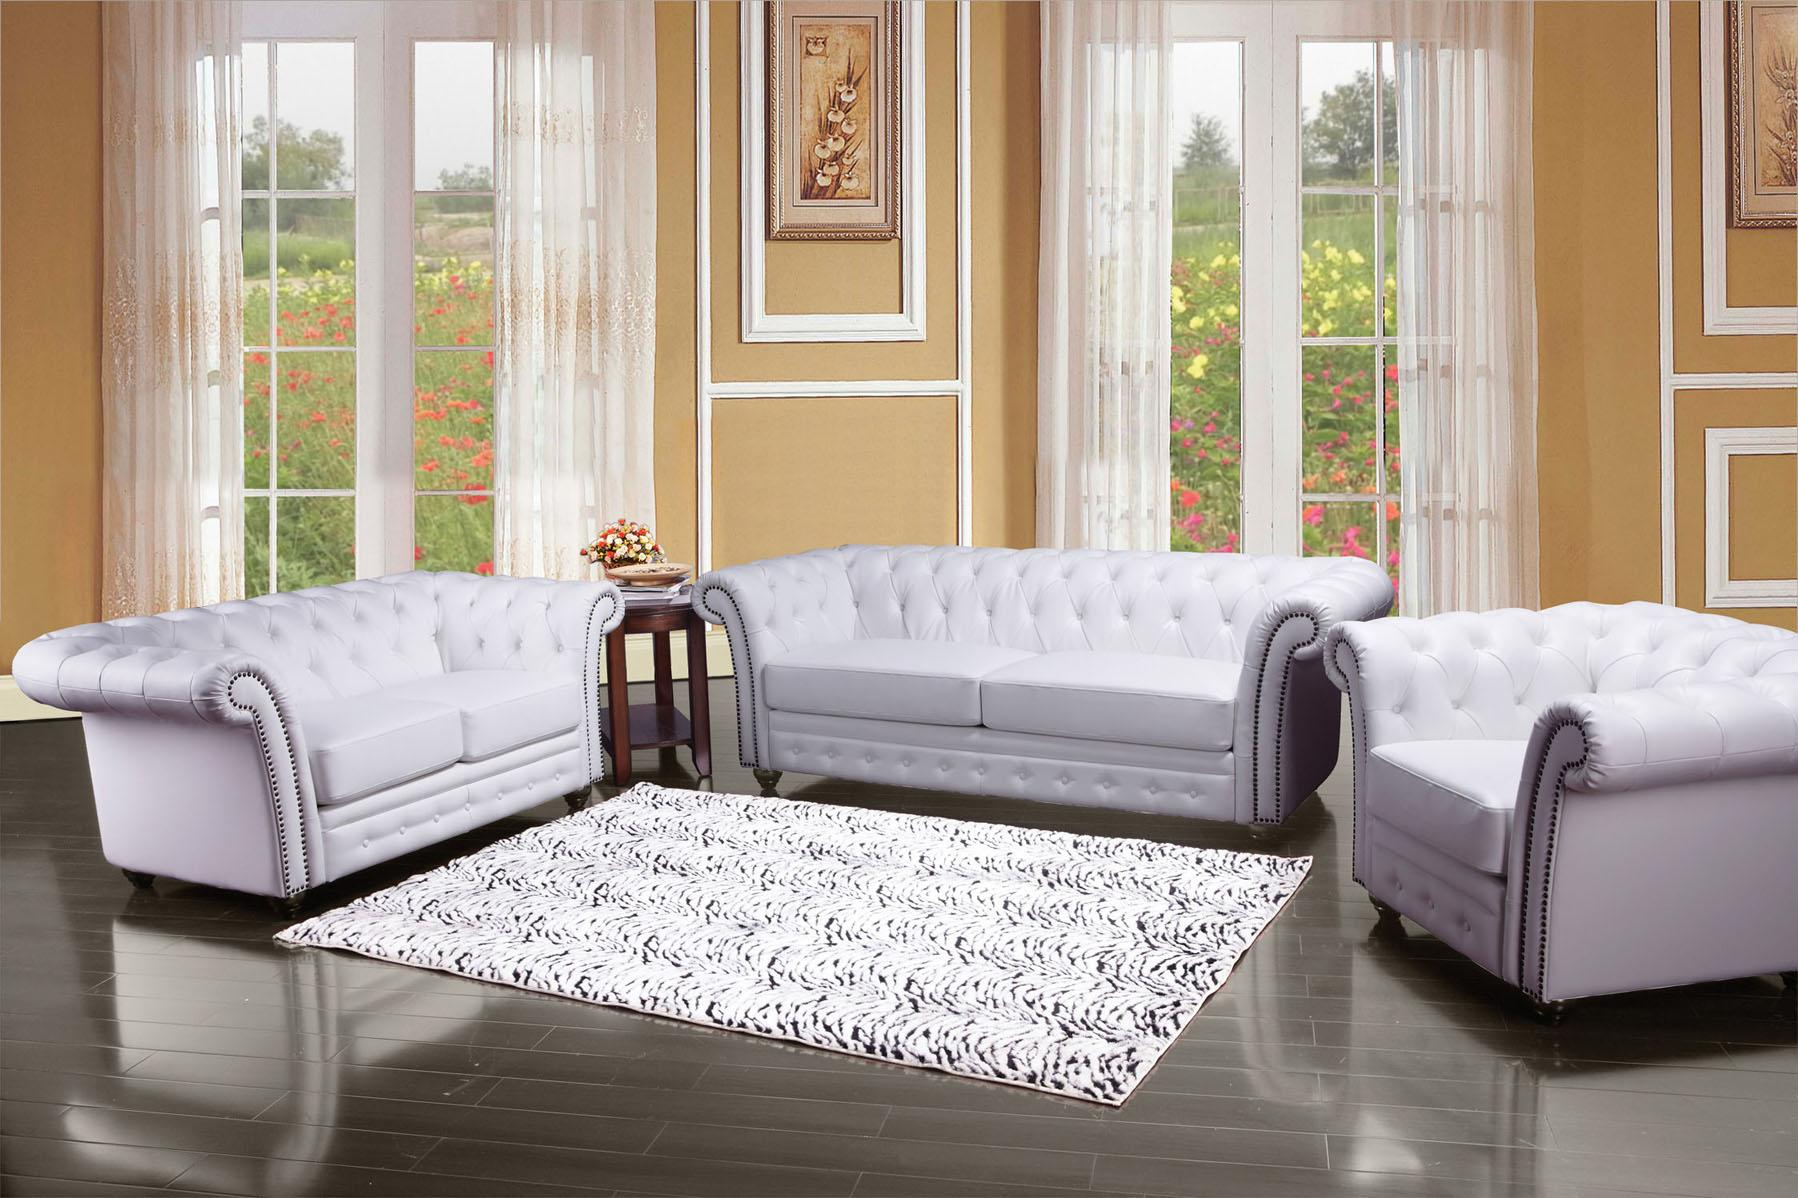 Acme Furniture Camden Traditional Tufted Sofa With Rolled Back And Nailhead  Trim   Michaelu0027s Furniture Warehouse   Sofa